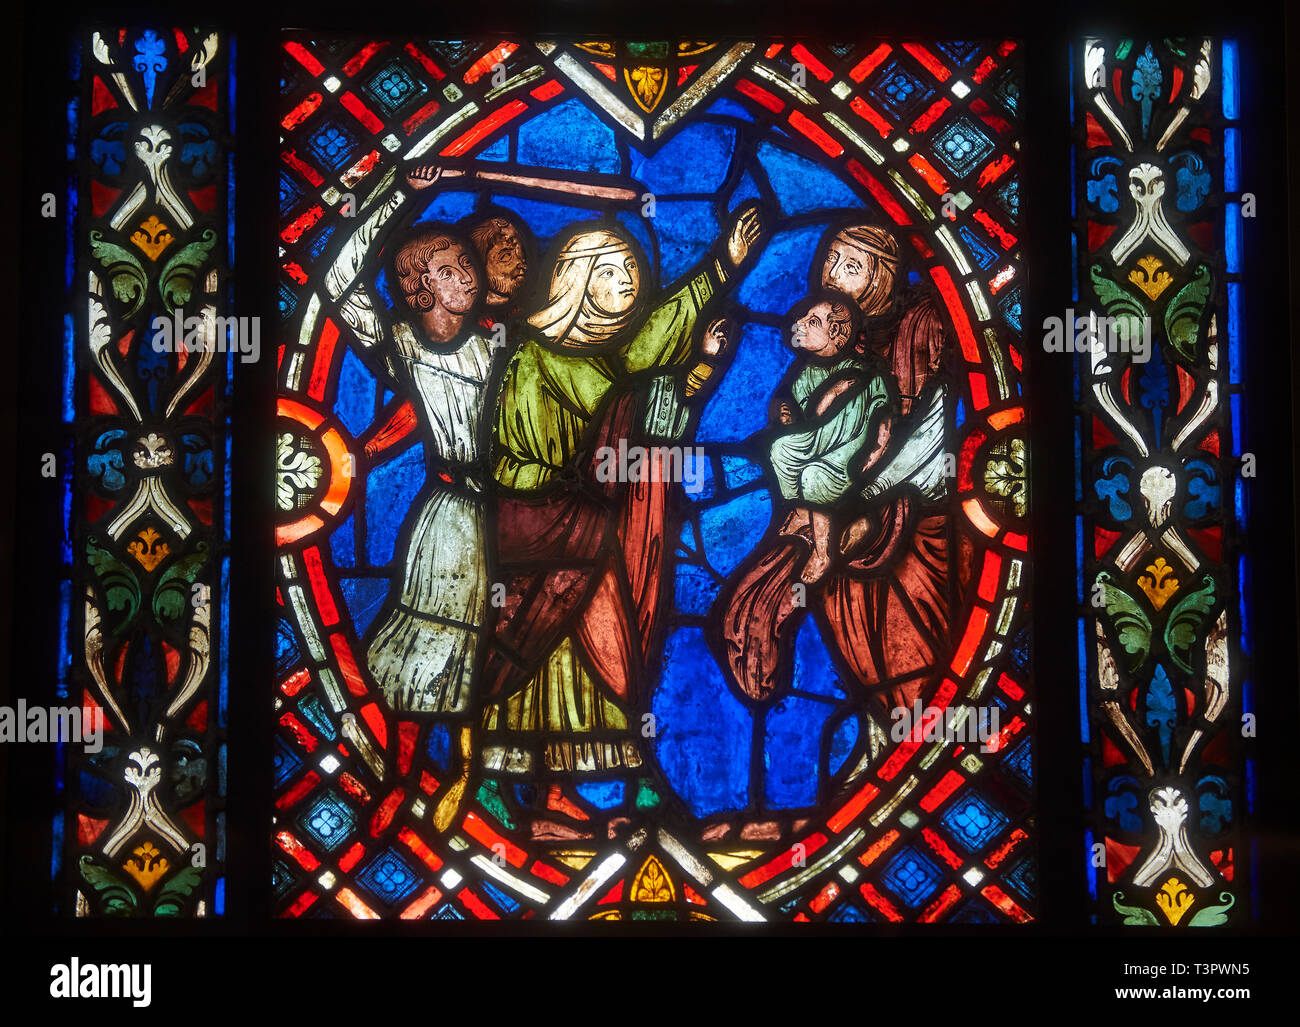 Stained glass windows depicting scenes from the life of Saint Blaise, made in the first quarter of the 13th century from  Soissons, France .  Inv OAR  Stock Photo